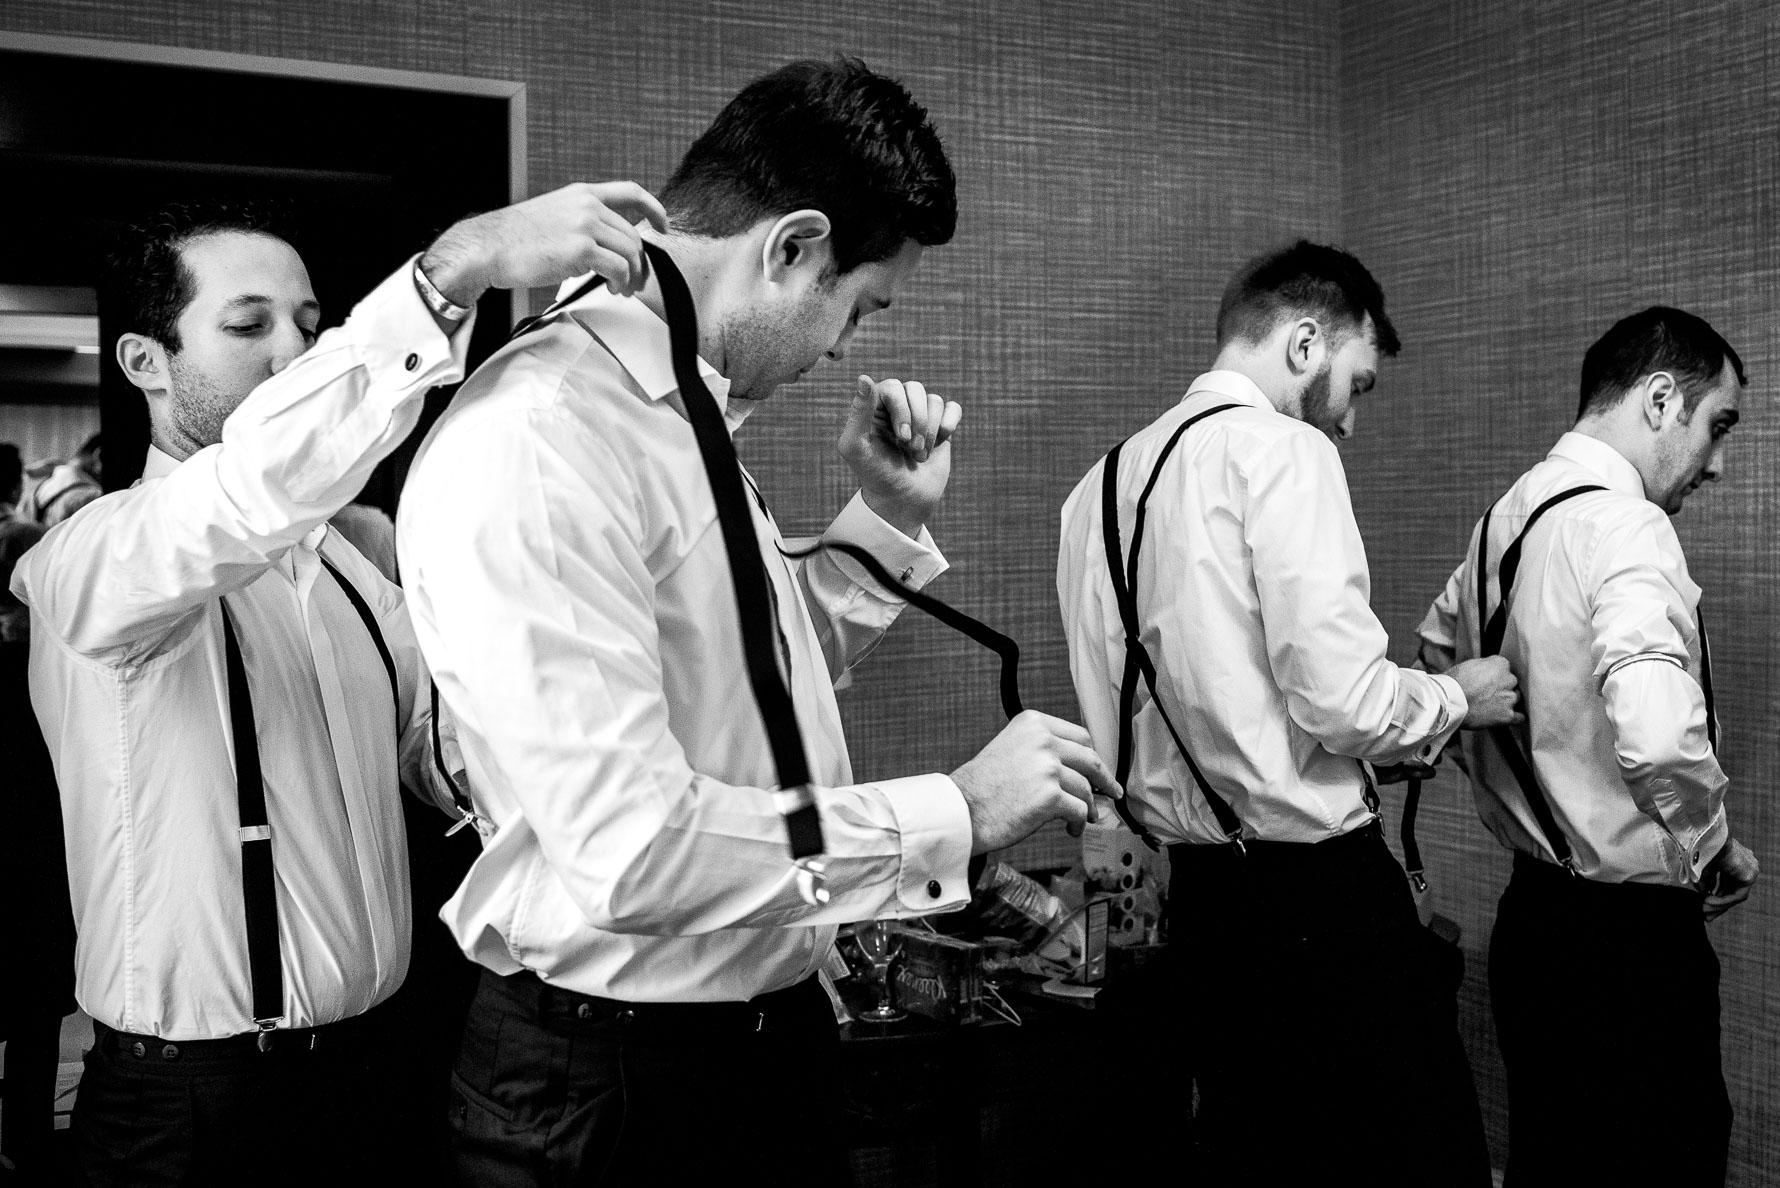 groomsmen getting ties and suits on